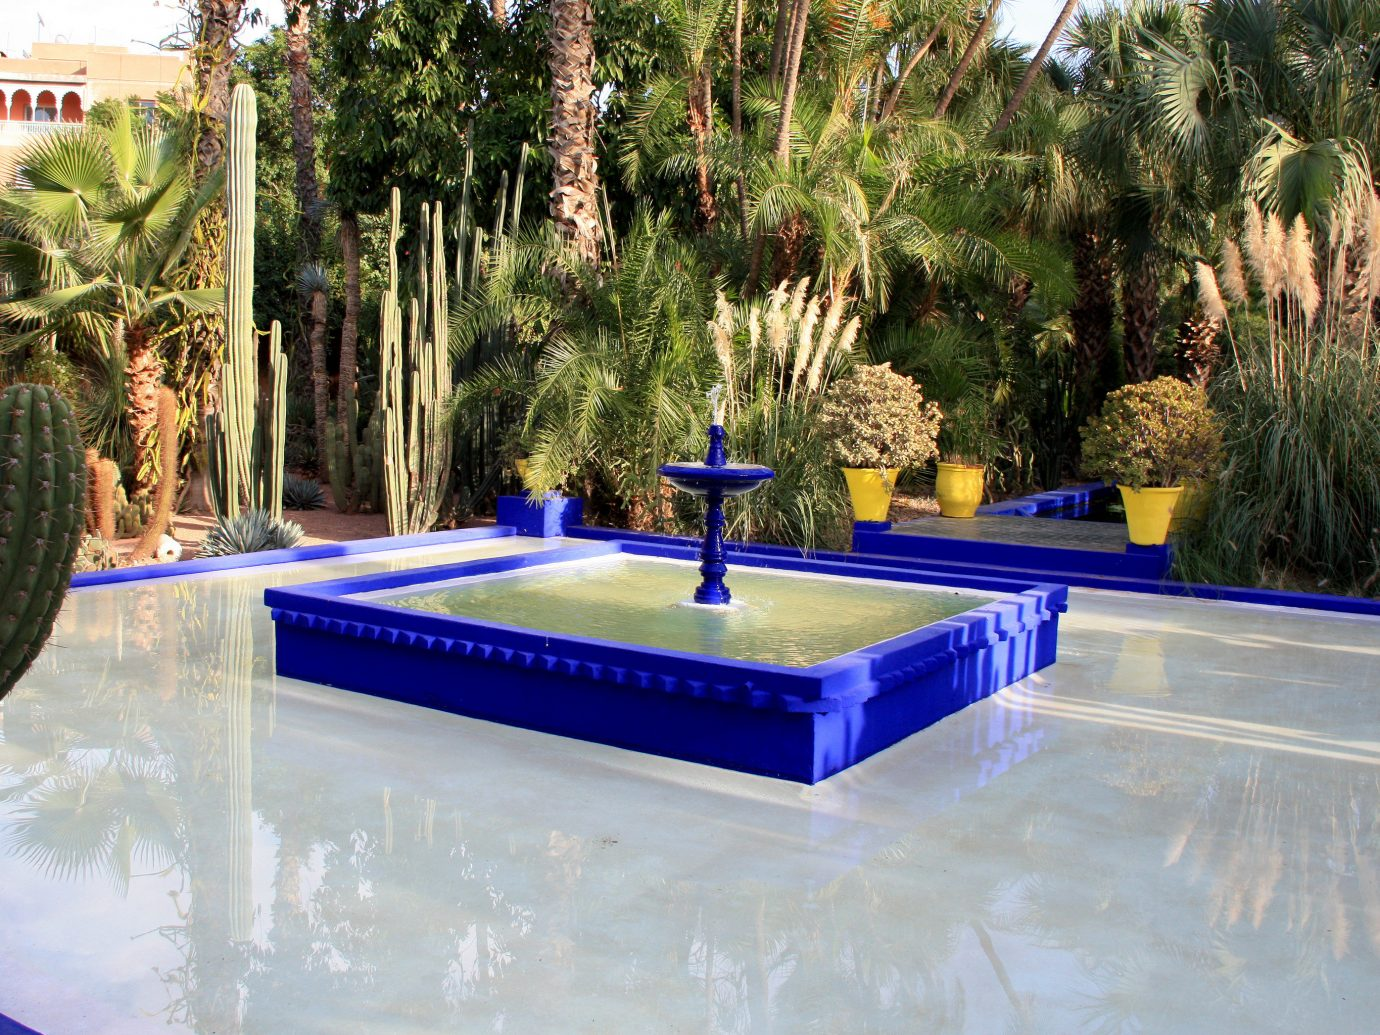 Trip Ideas tree swimming pool water leisure majorelle blue plant water feature Resort table amenity recreation colorful colored